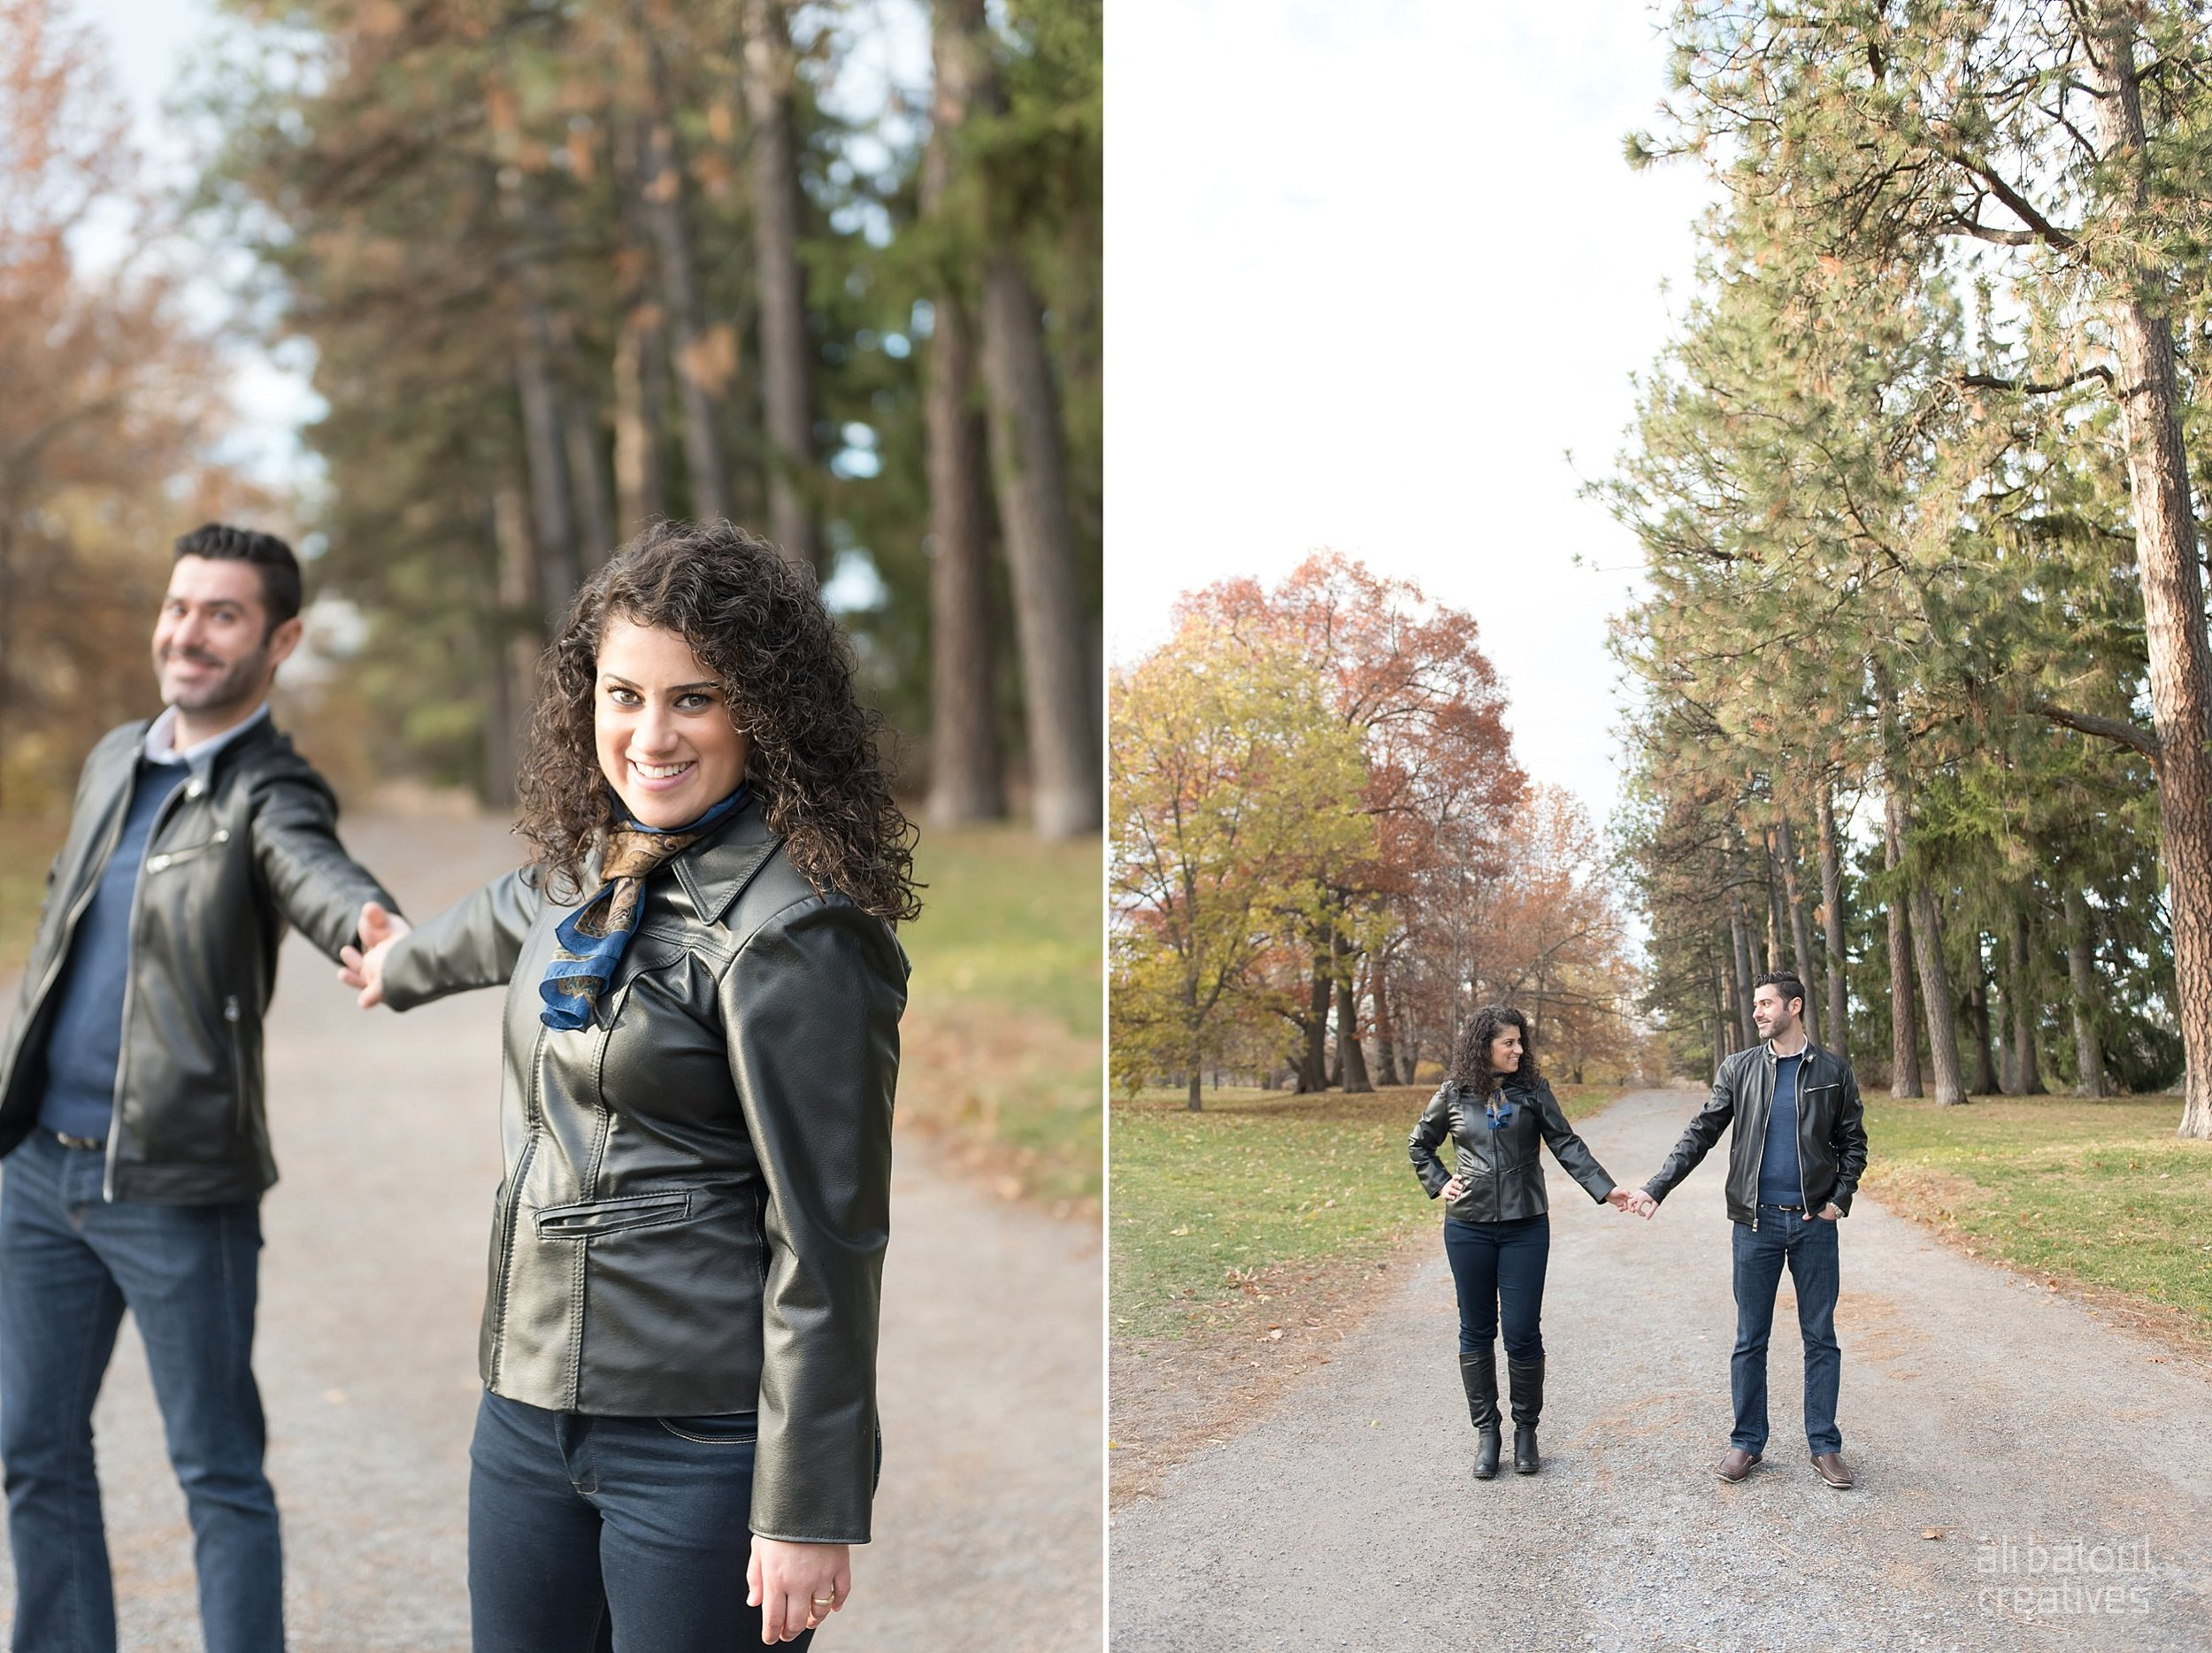 Isabelle + Arman Couples Shoot - Ali Batoul Creatives - Blog-18_Stomped.jpg